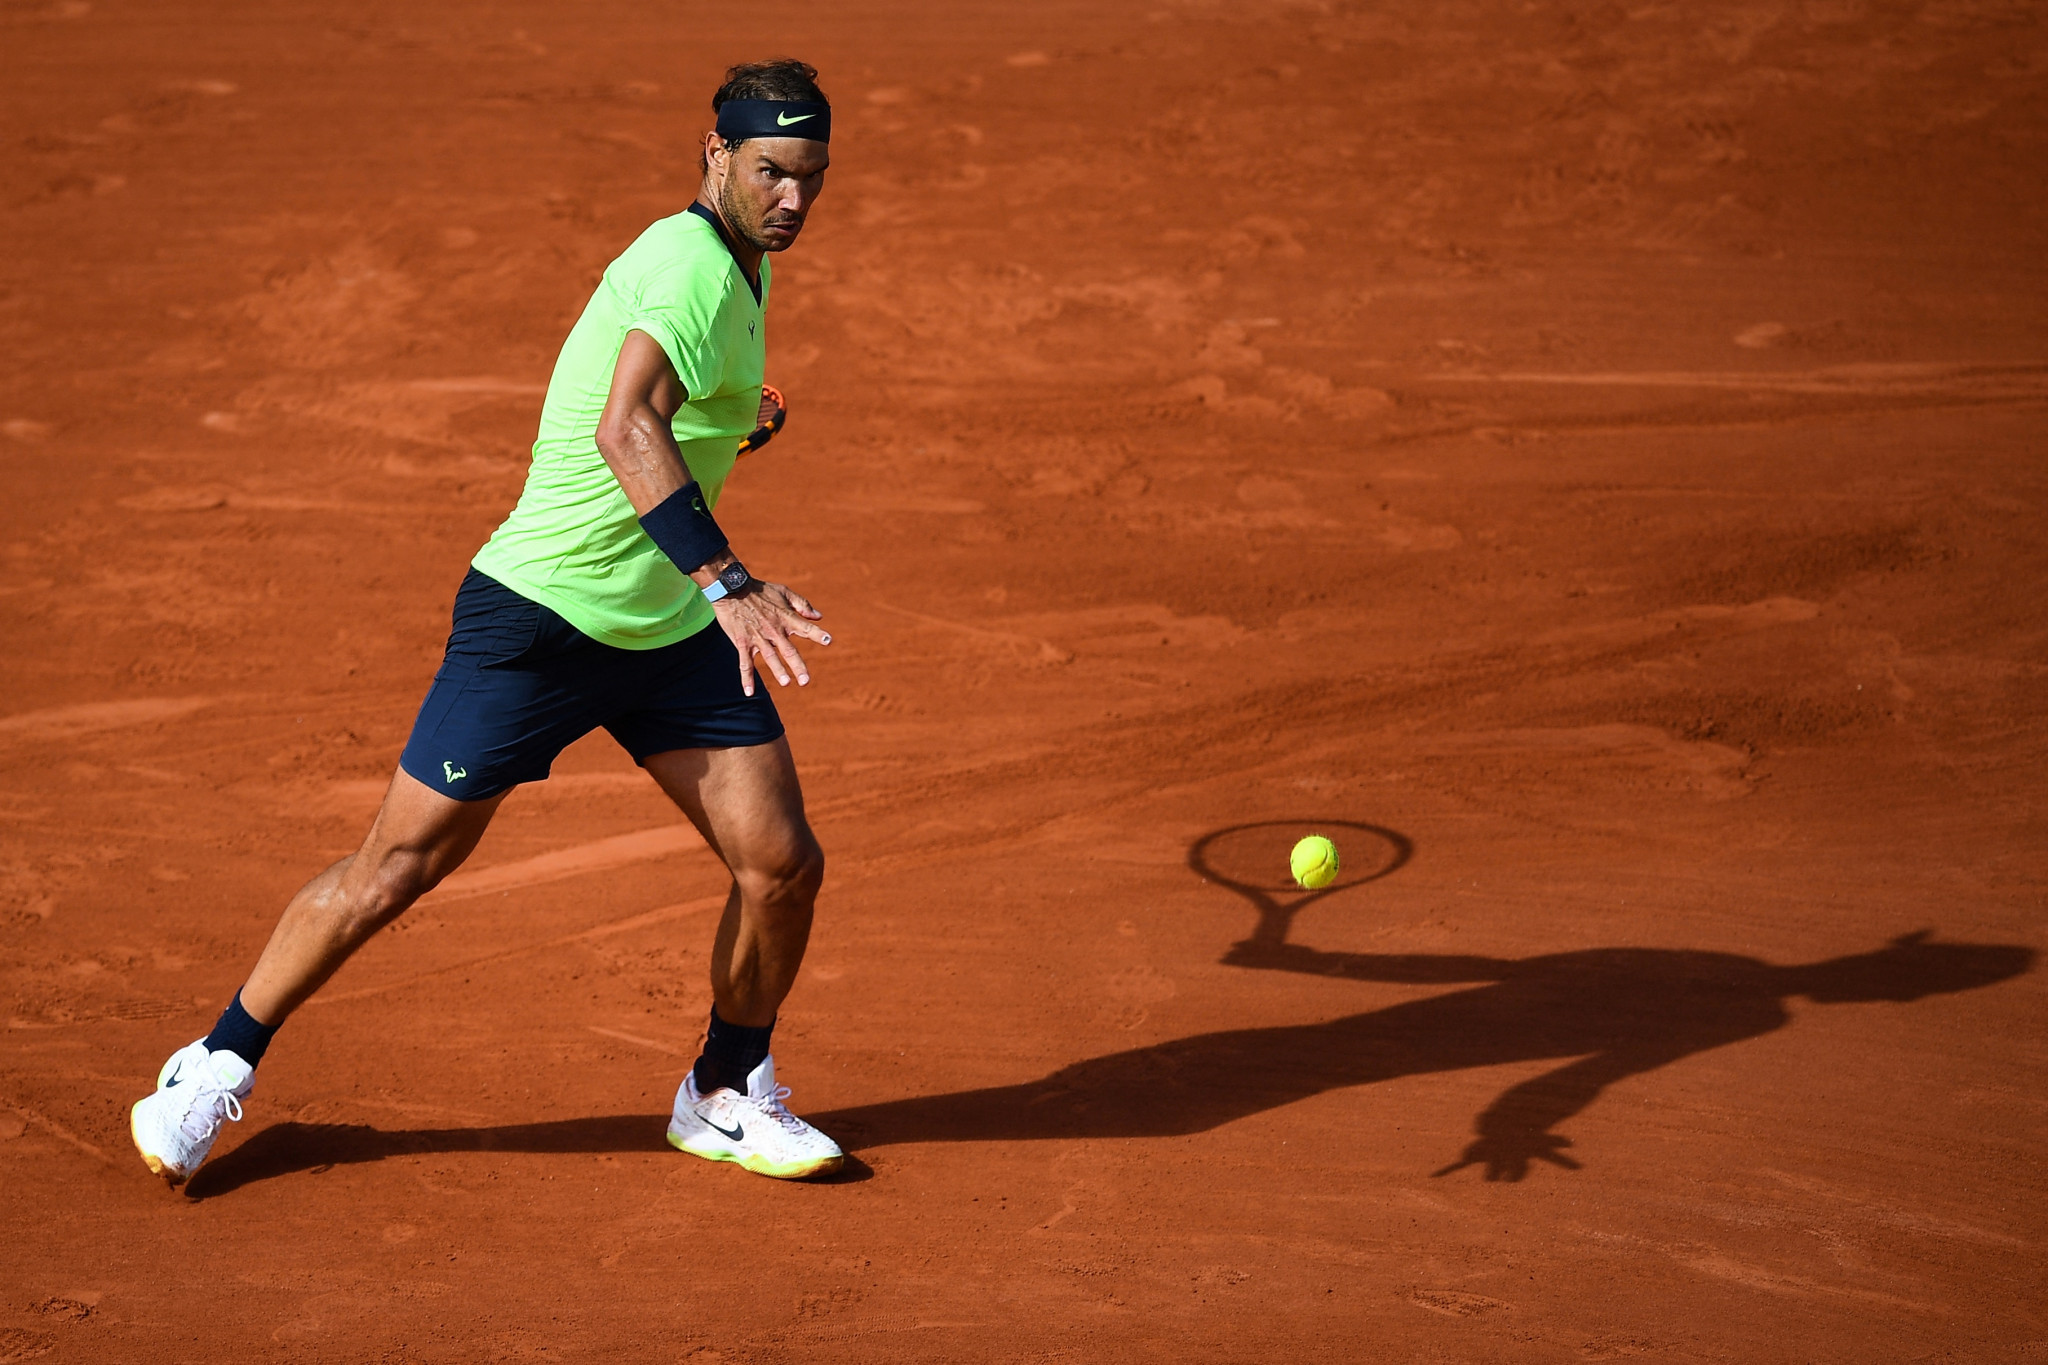 Nadal continues quest for 14th French Open title as Djokovic advances